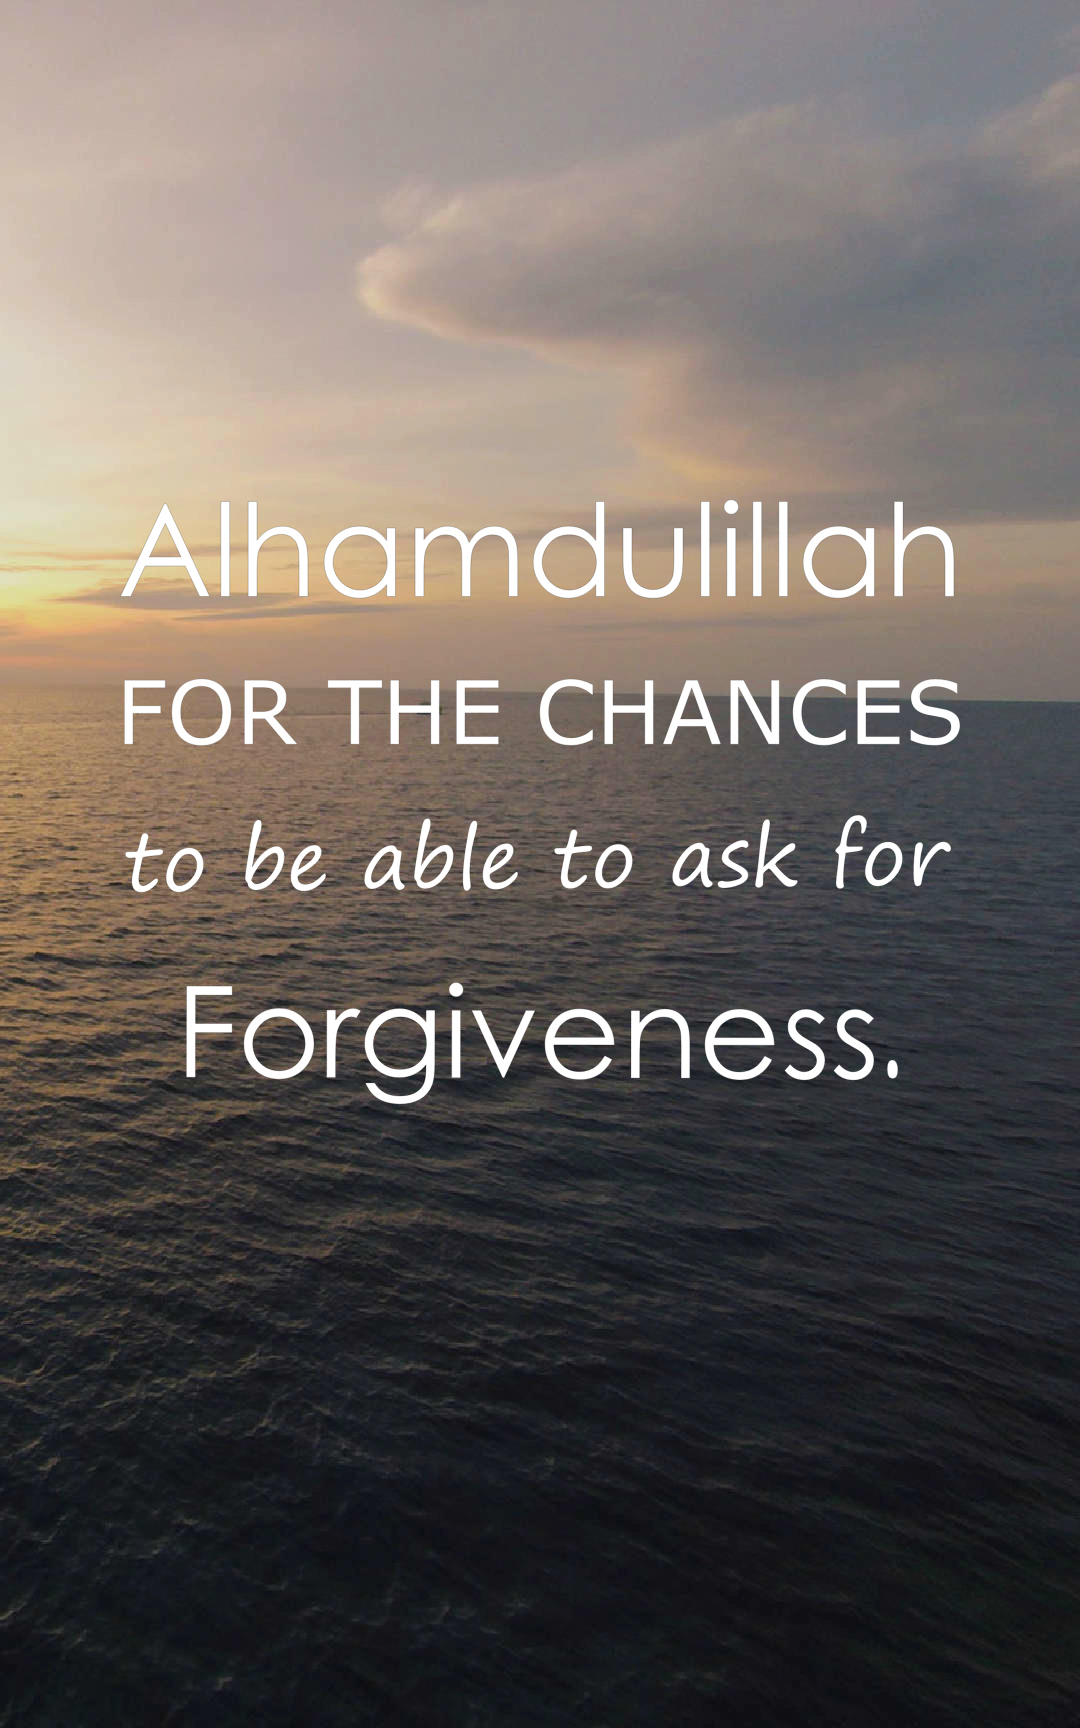 35 Inspirational Islamic Quotes with Images